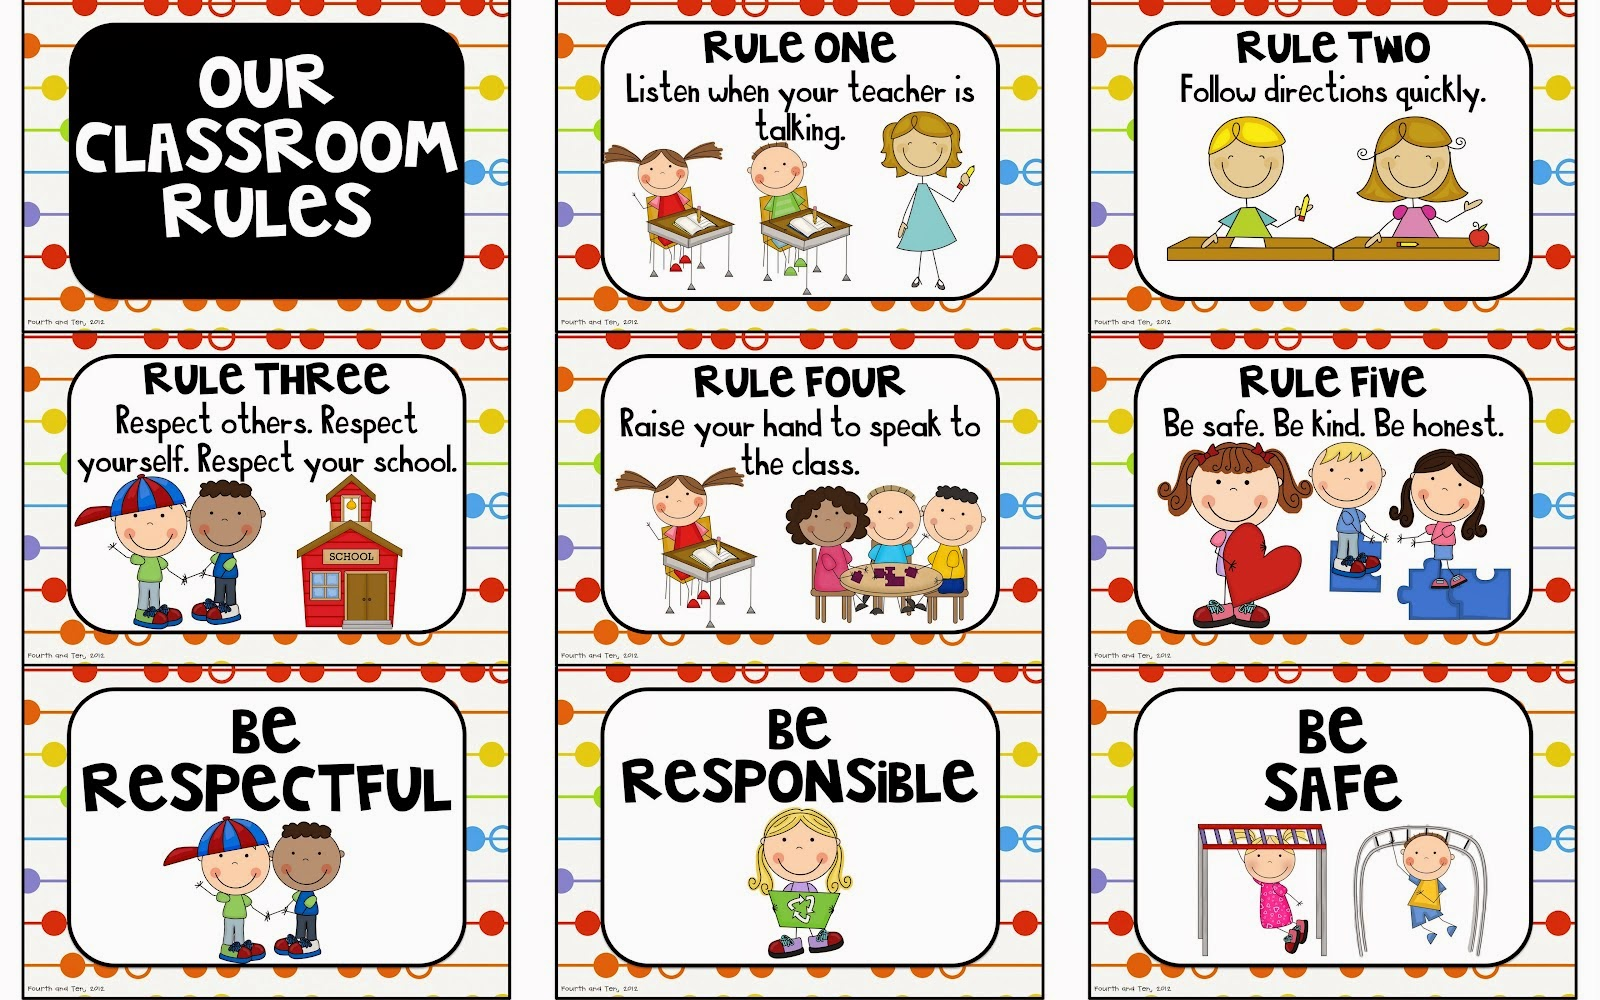 explain the benefits of all staff consistently and fairly applying boundaries and rules for children Related questions why is it important to consistently apply rules and boundaries for children's behaviour according to their age the importance of consistently and fairly applied boundaries and rules for children's behaviour.